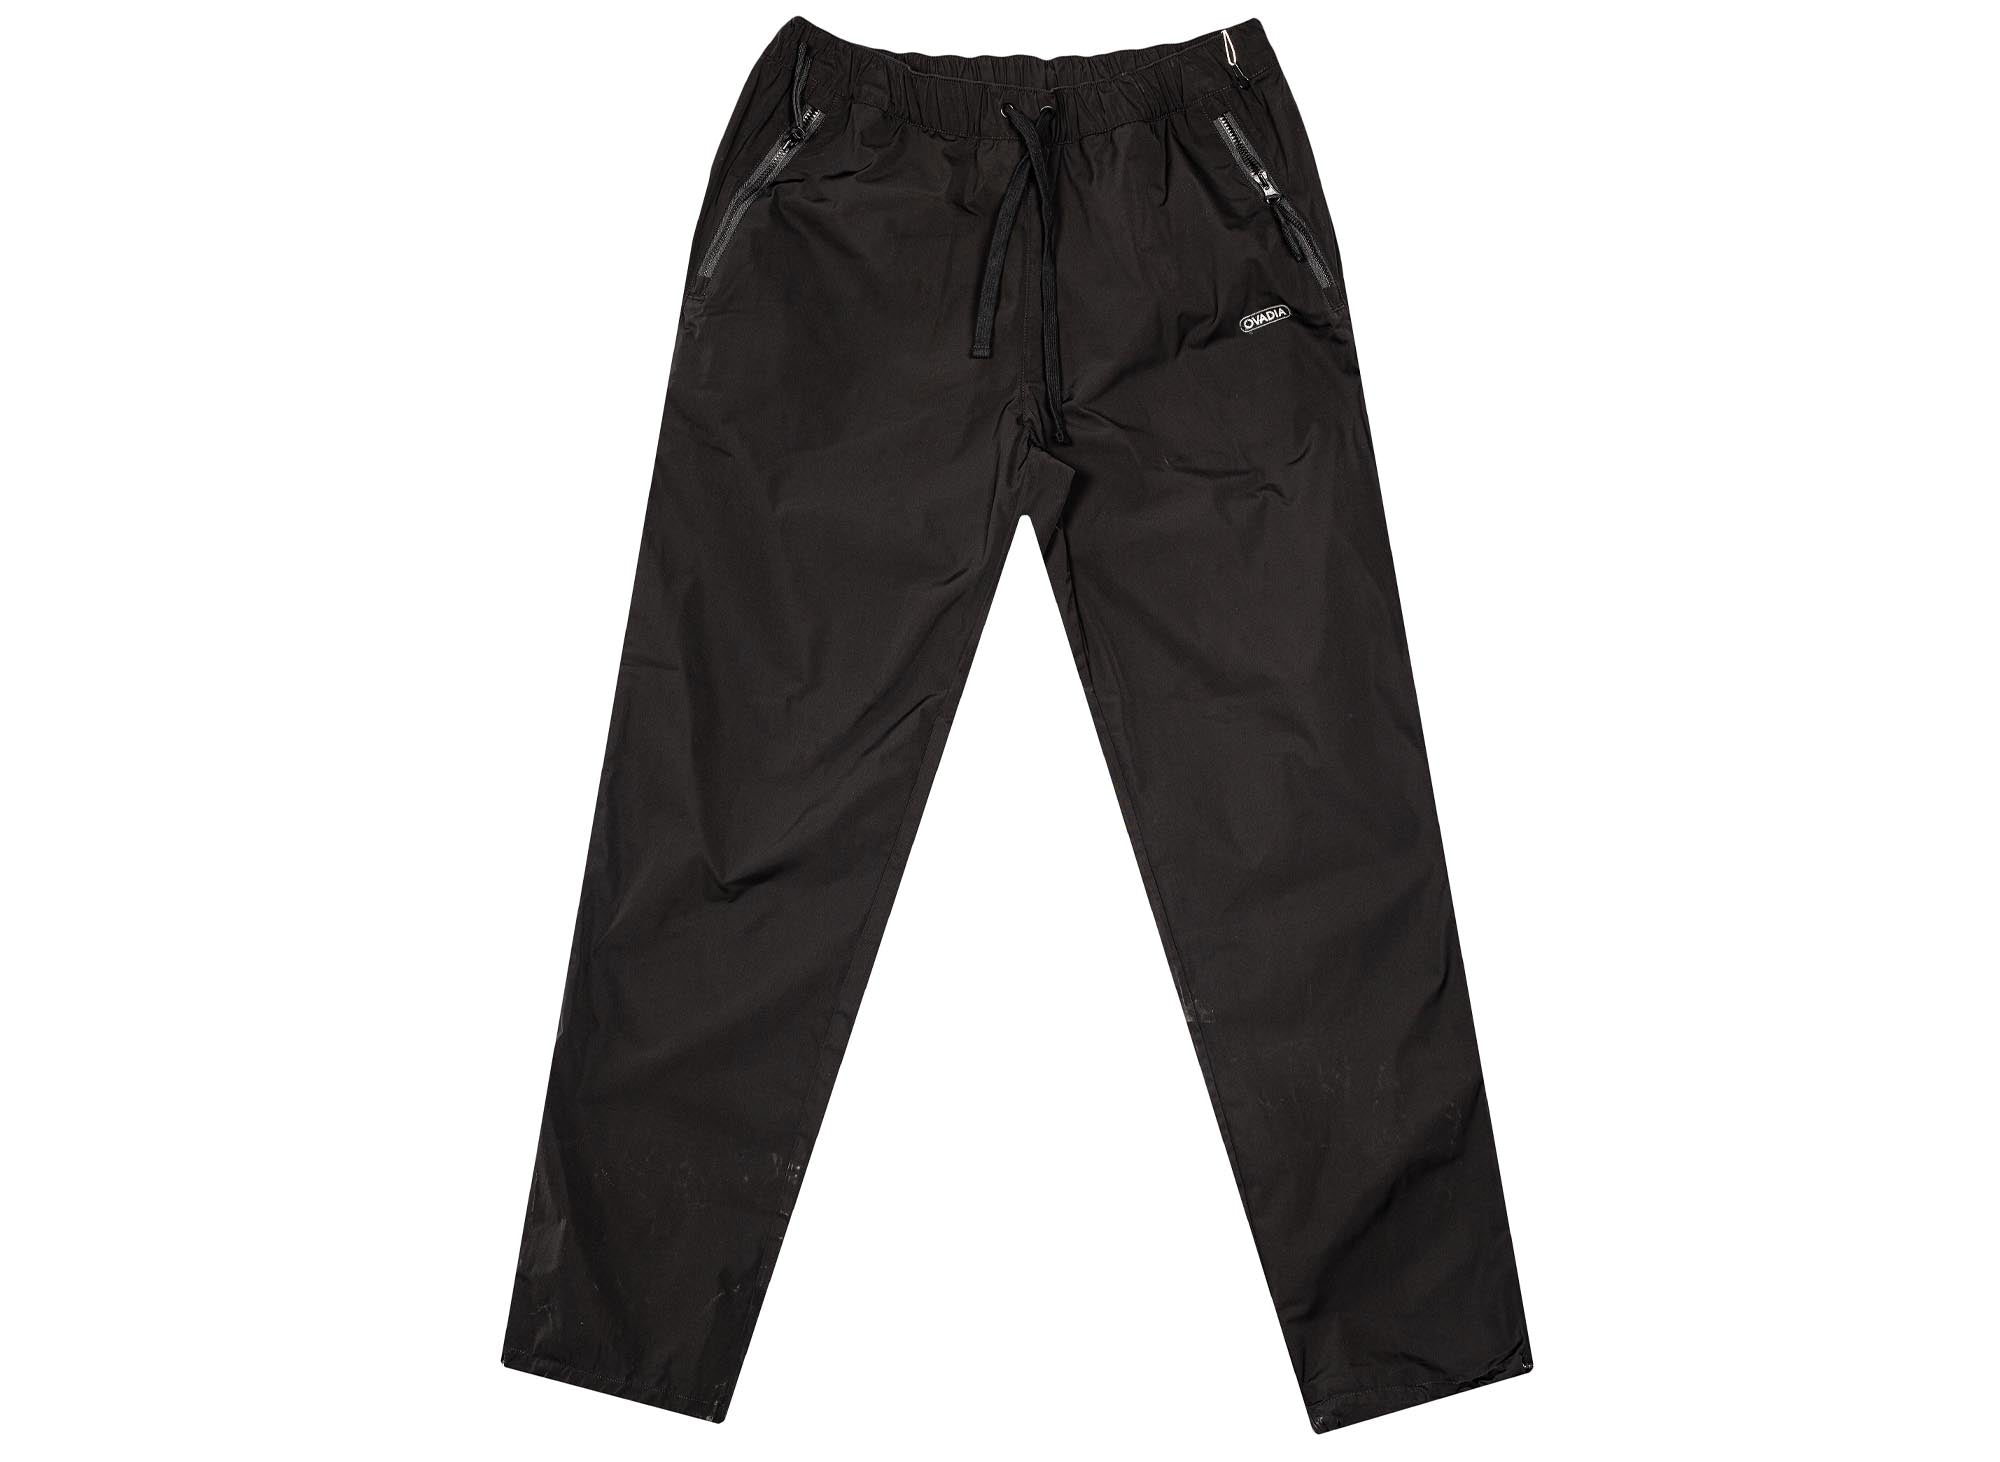 Ovadia and Sons Trail Pants 'Black'